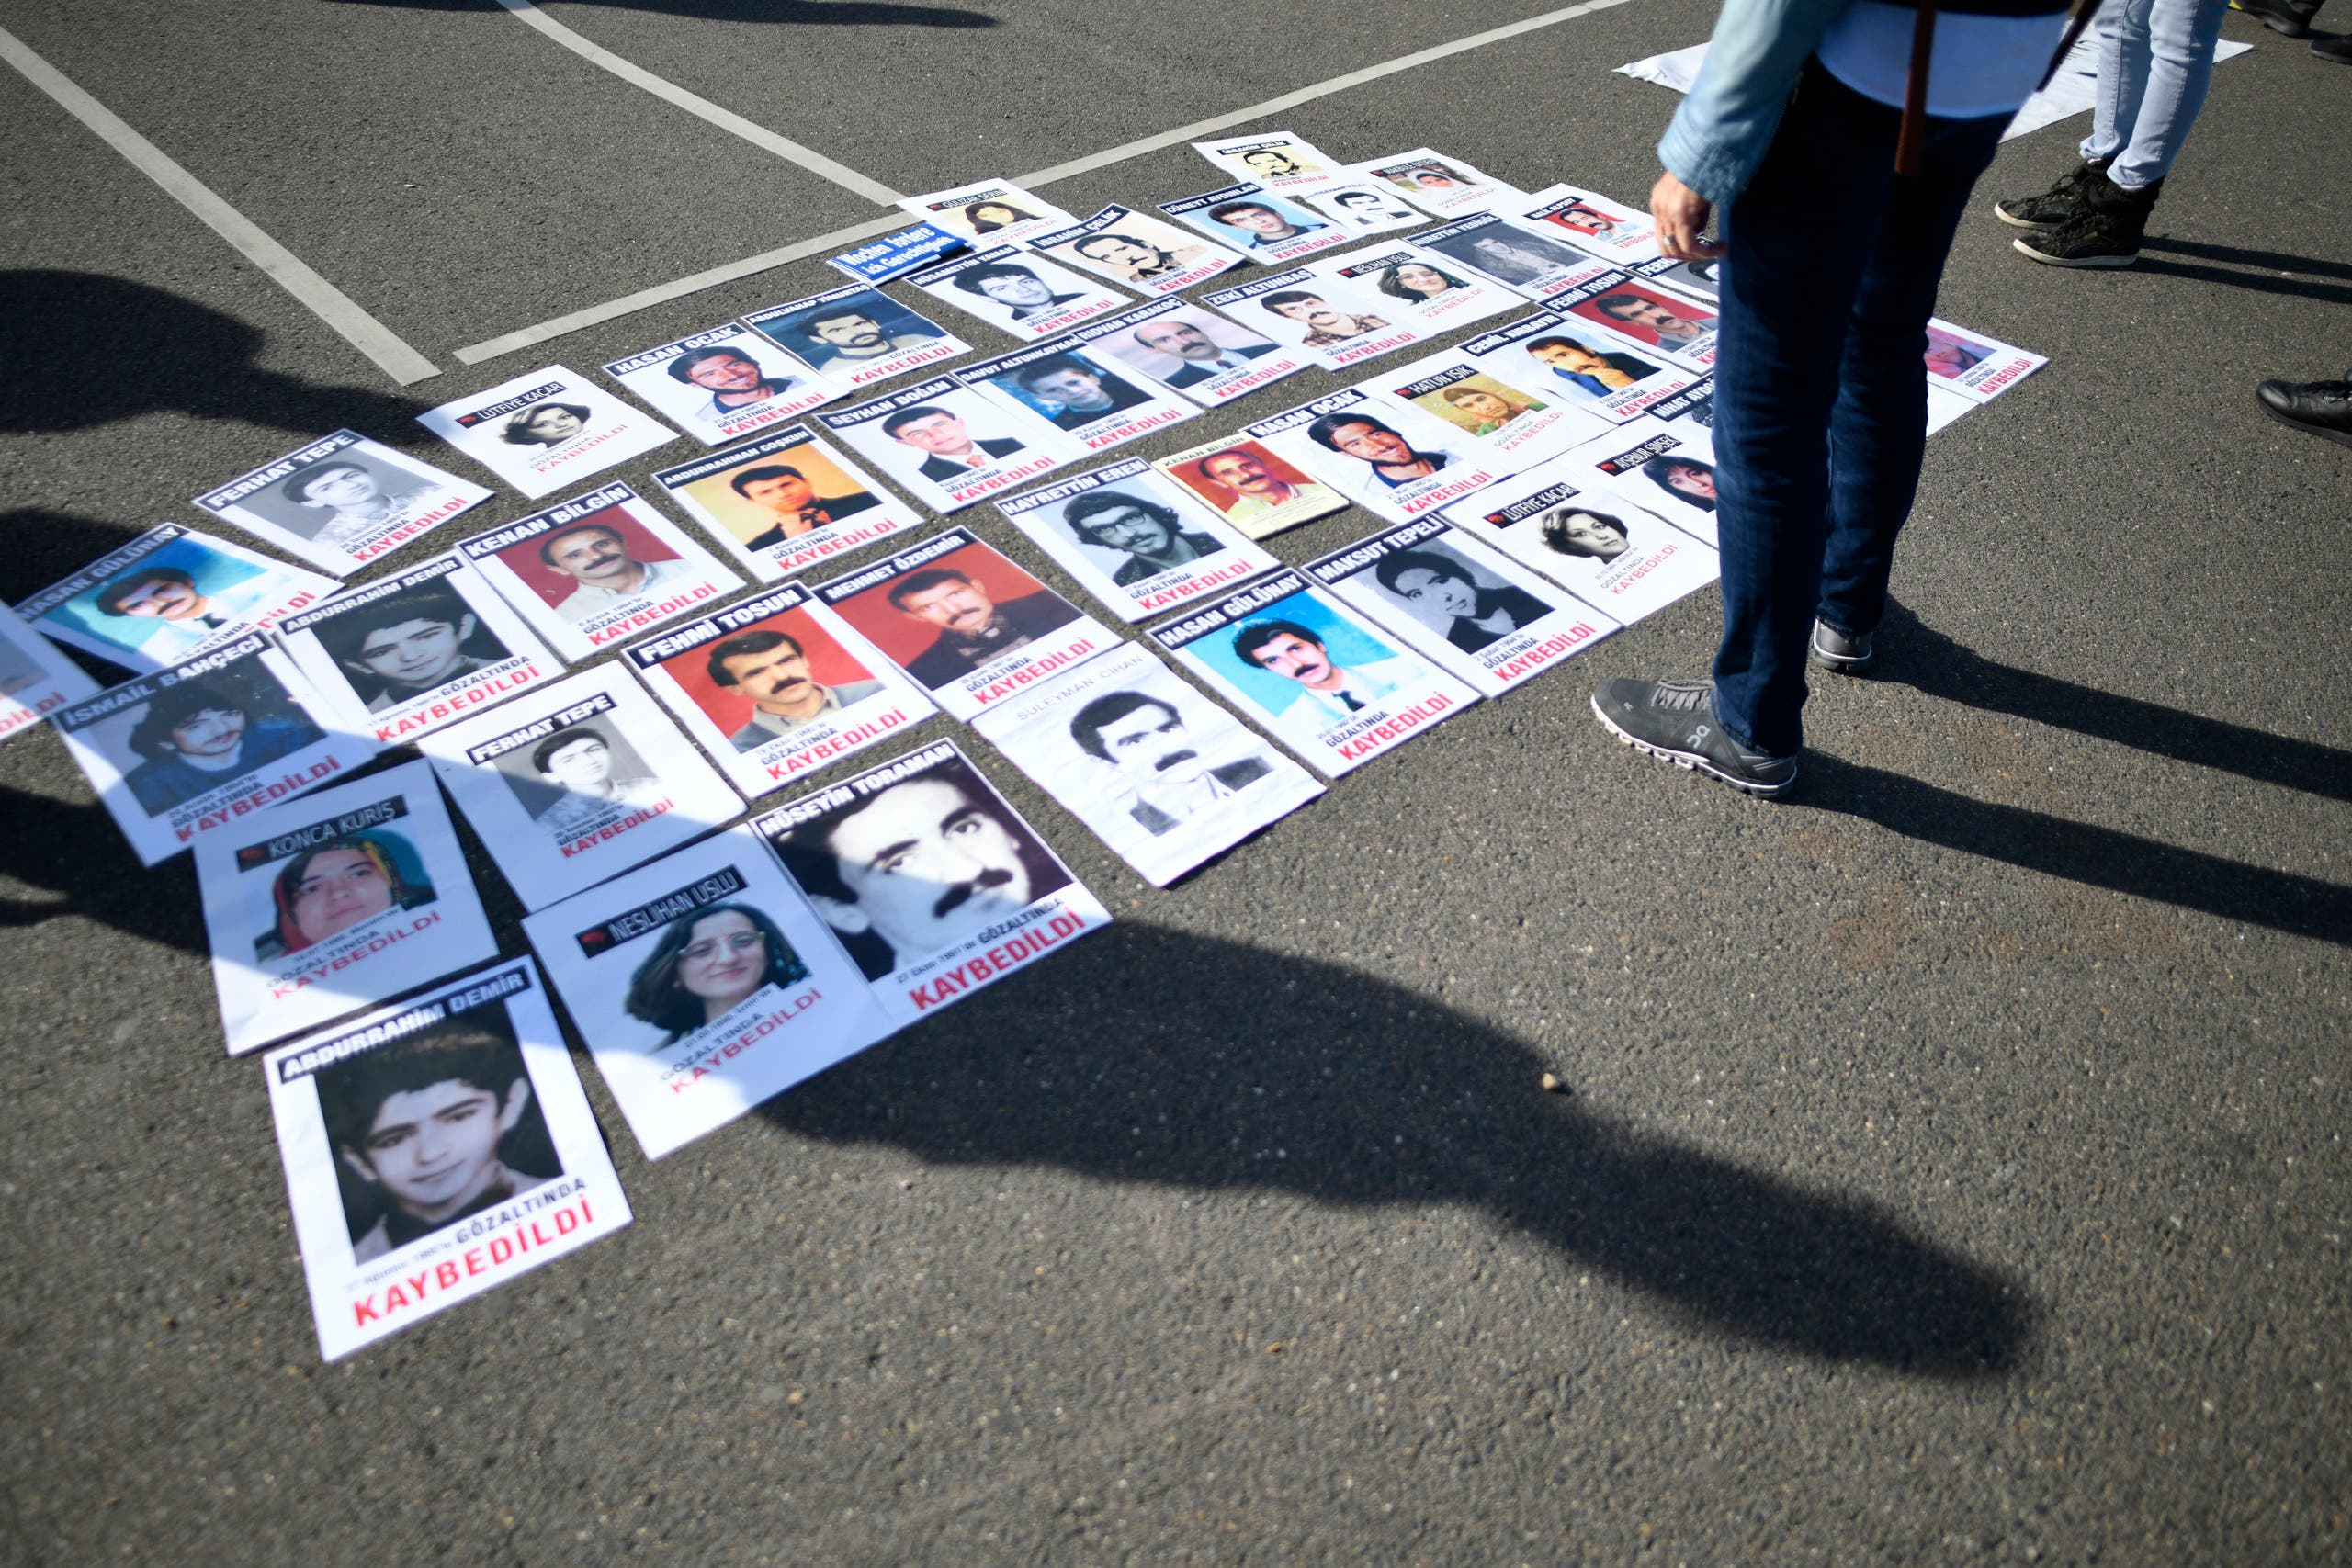 Photos of Turkish people who died in jail in Turkey lay on the ground during a demonstration in Cologne prior to the visit of the Turkish President to Cologne, on September 29, 2018. (AFP)